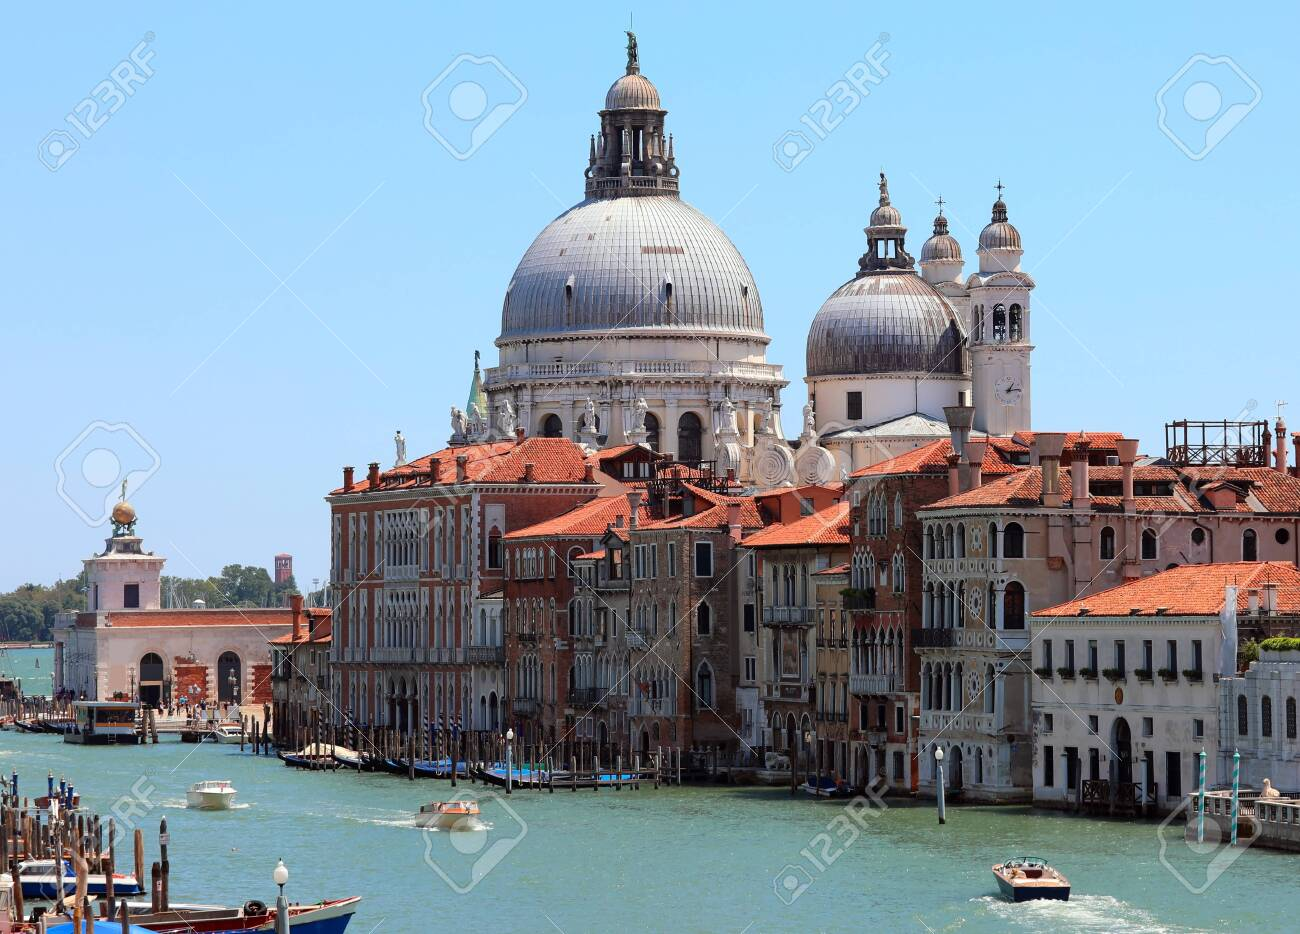 Big Dome Of The Church Of Madonna Della Salute And Many Boats.. Stock  Photo, Picture And Royalty Free Image. Image 130123384.